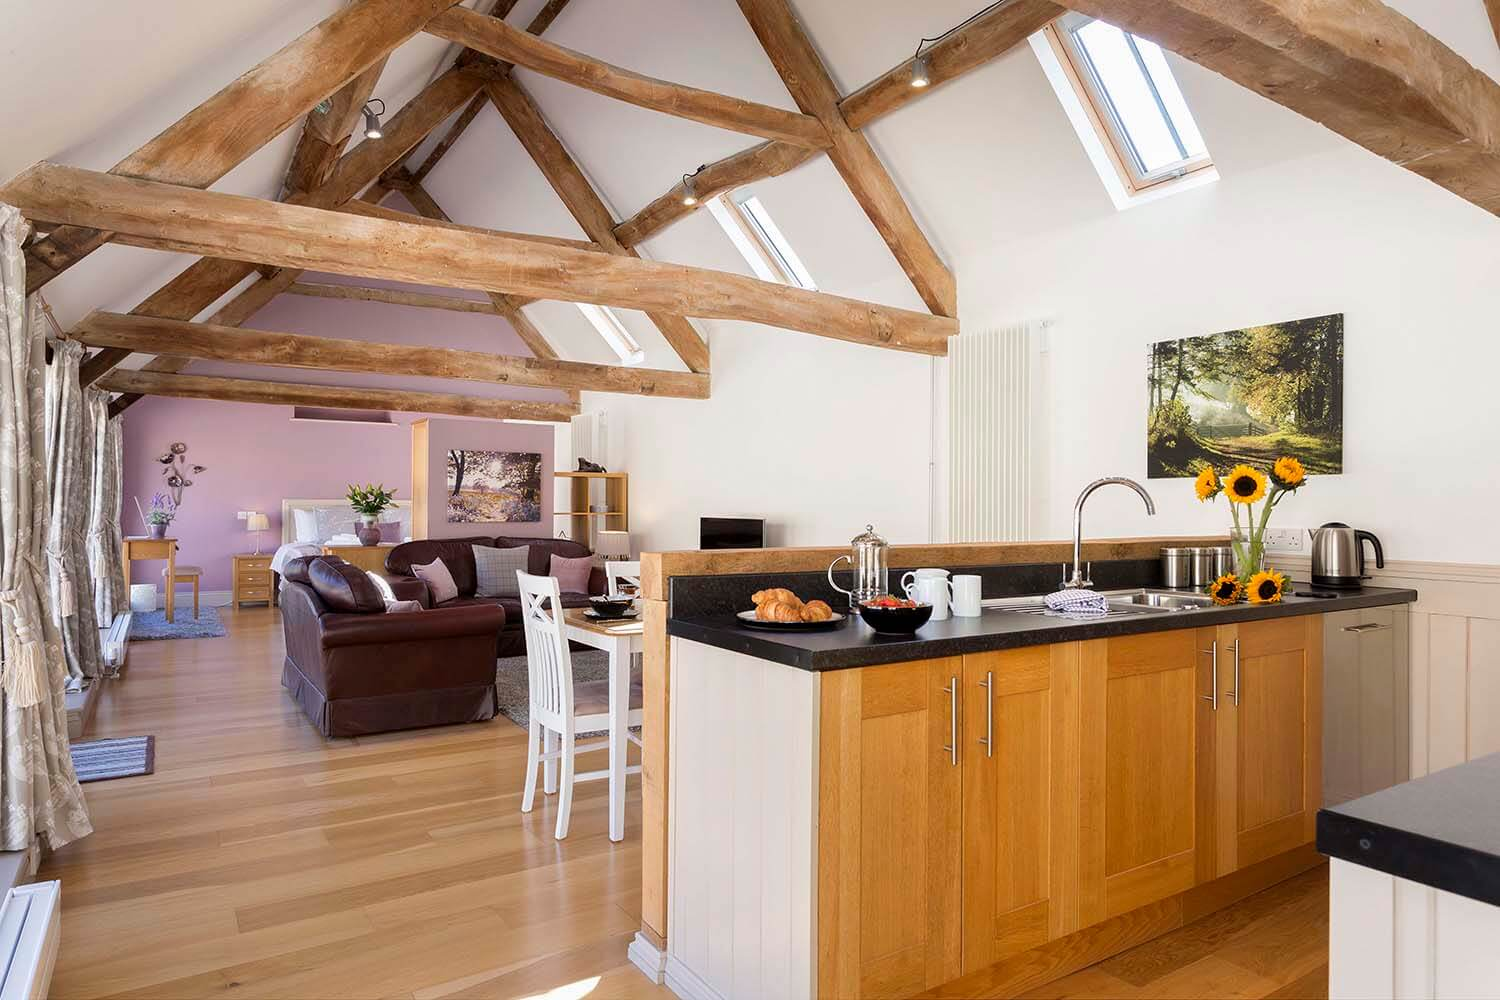 The Car Hotel's holiday lettings kitchen view